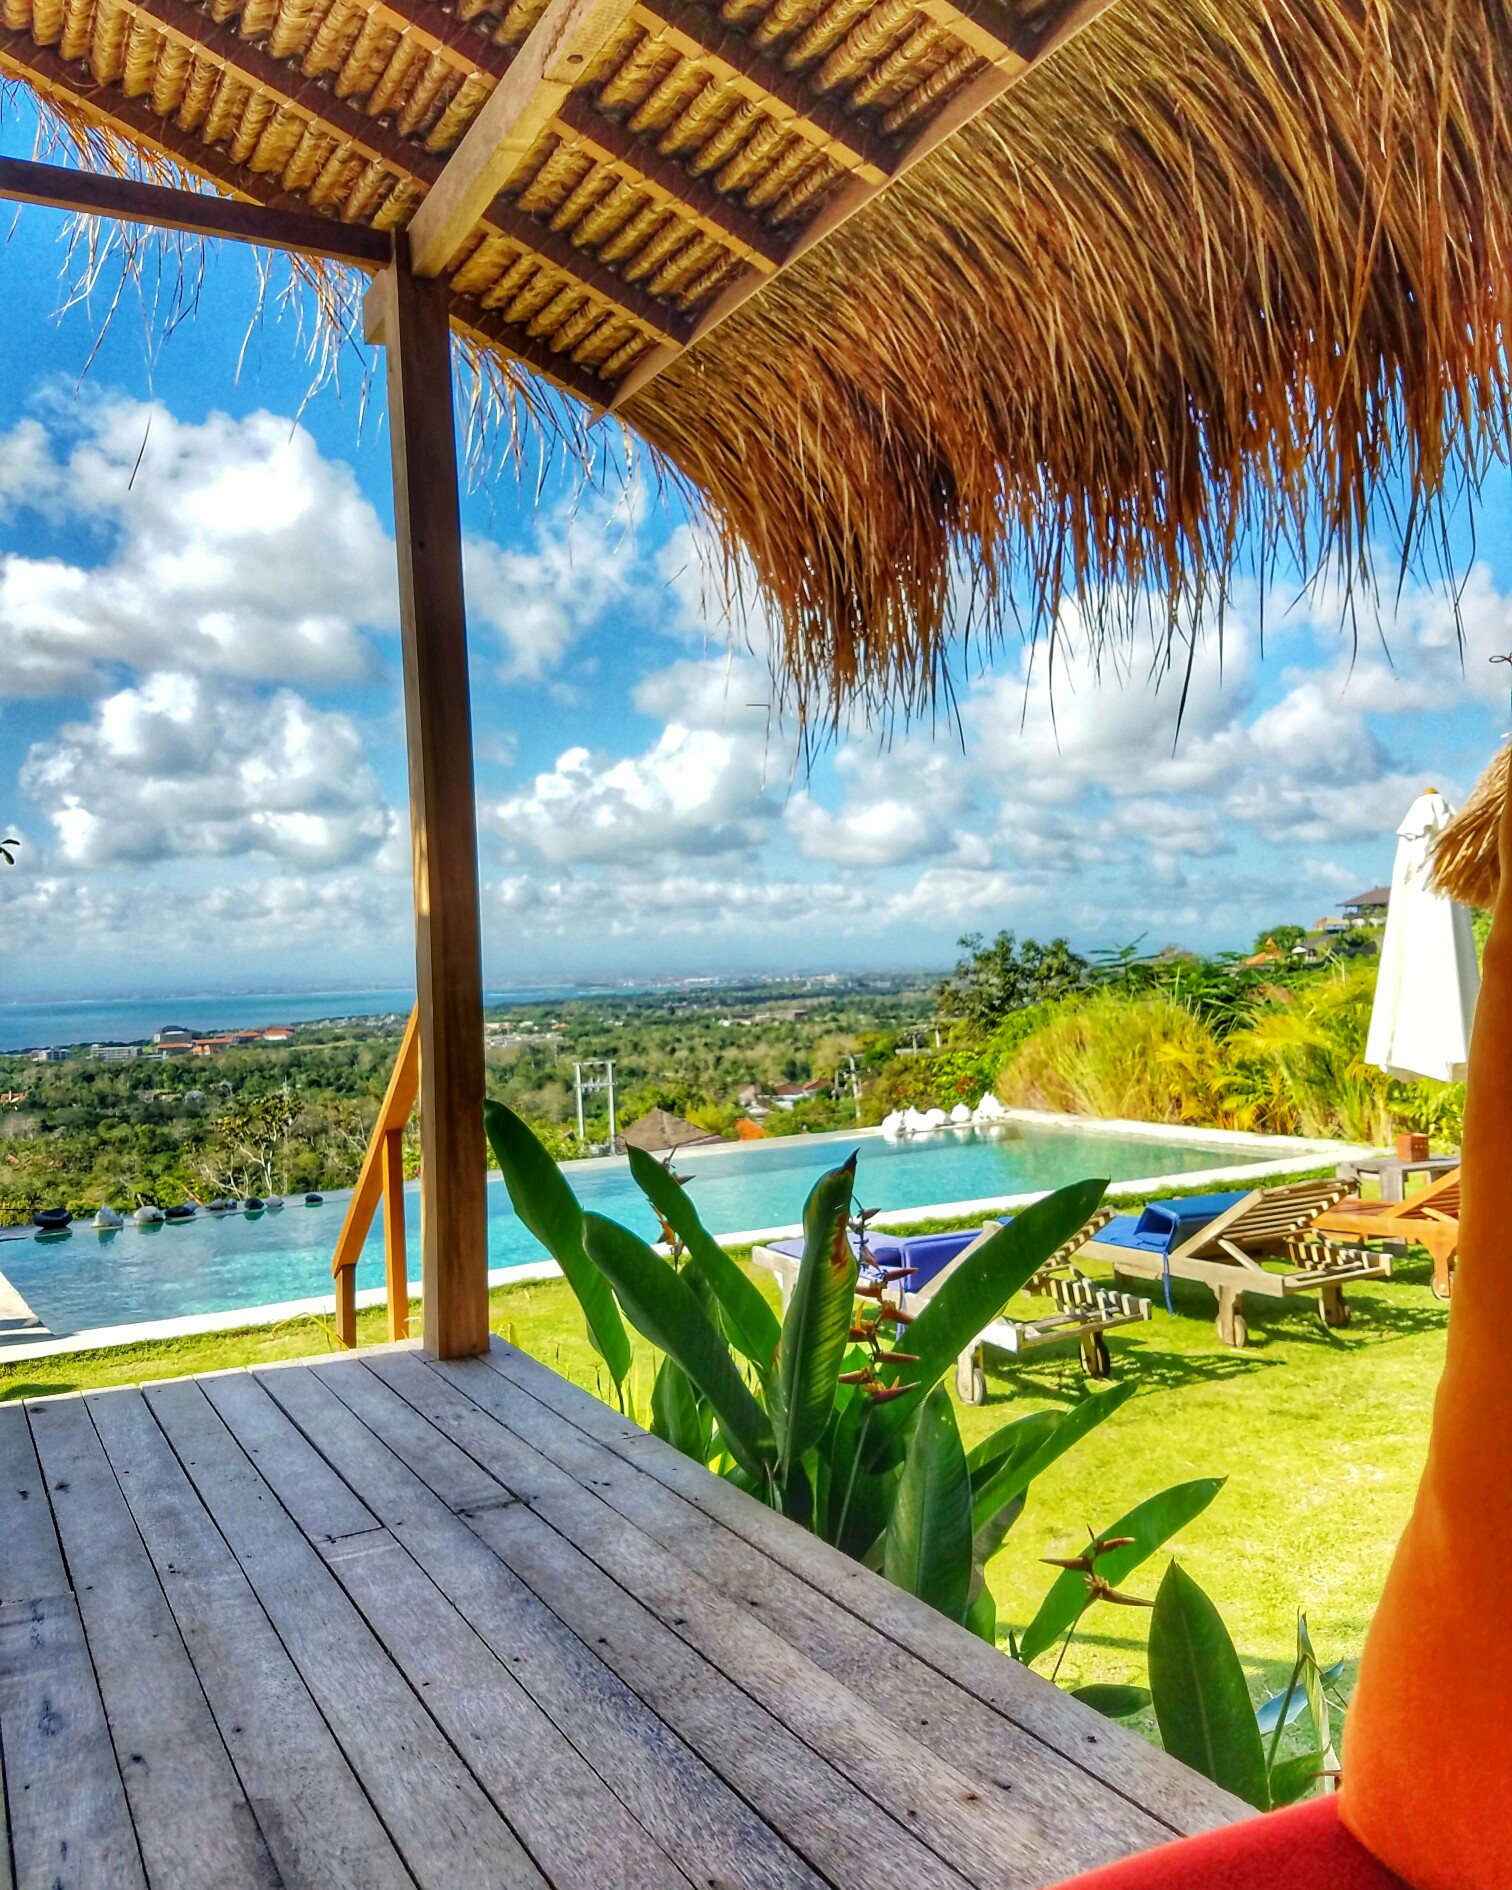 images Tropical Airbnb Stays That Will Blow Your Mind